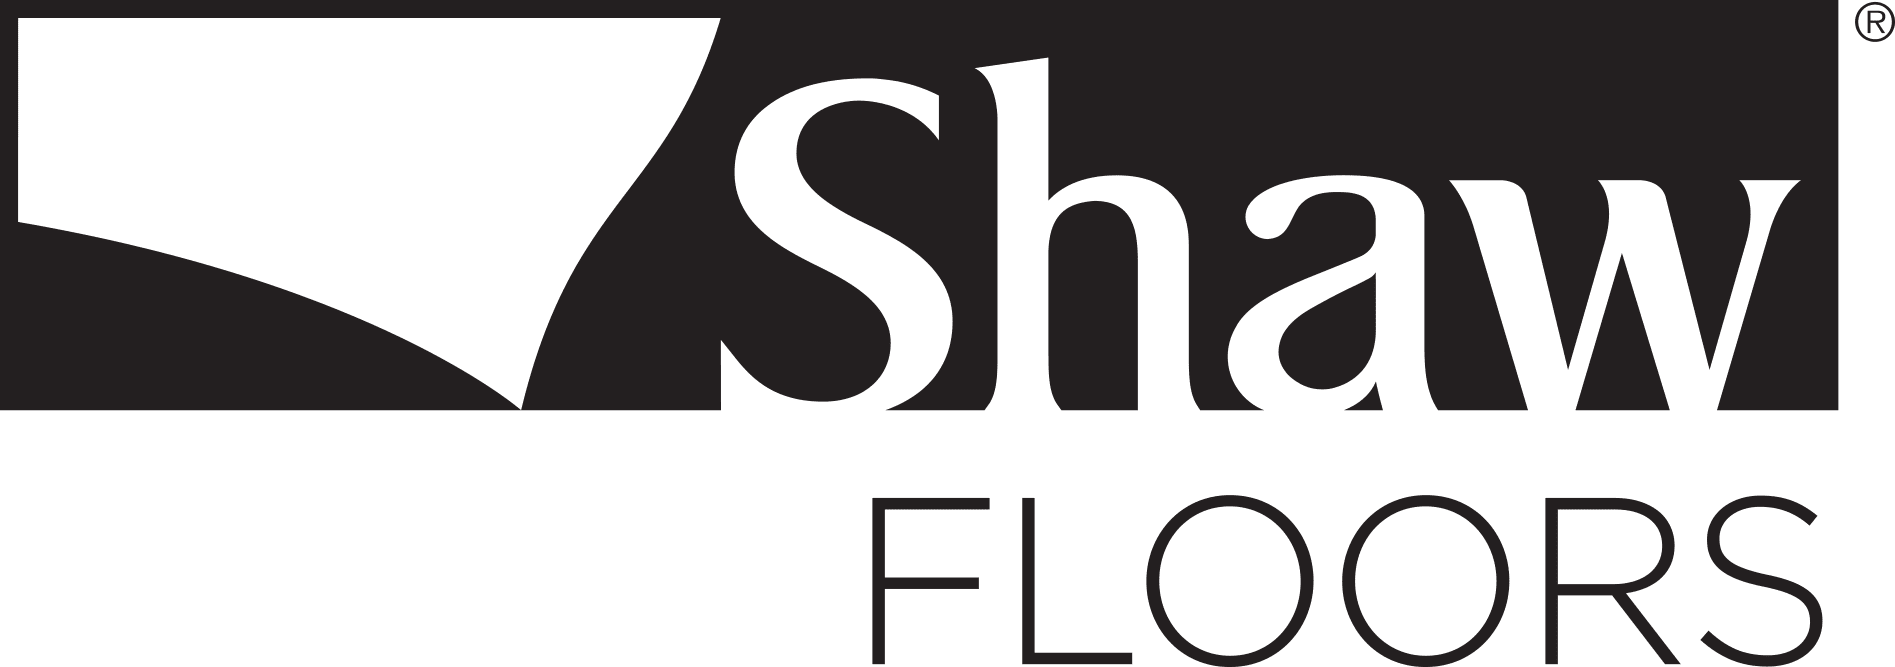 Shaw Floors dealer in Tacoma WA